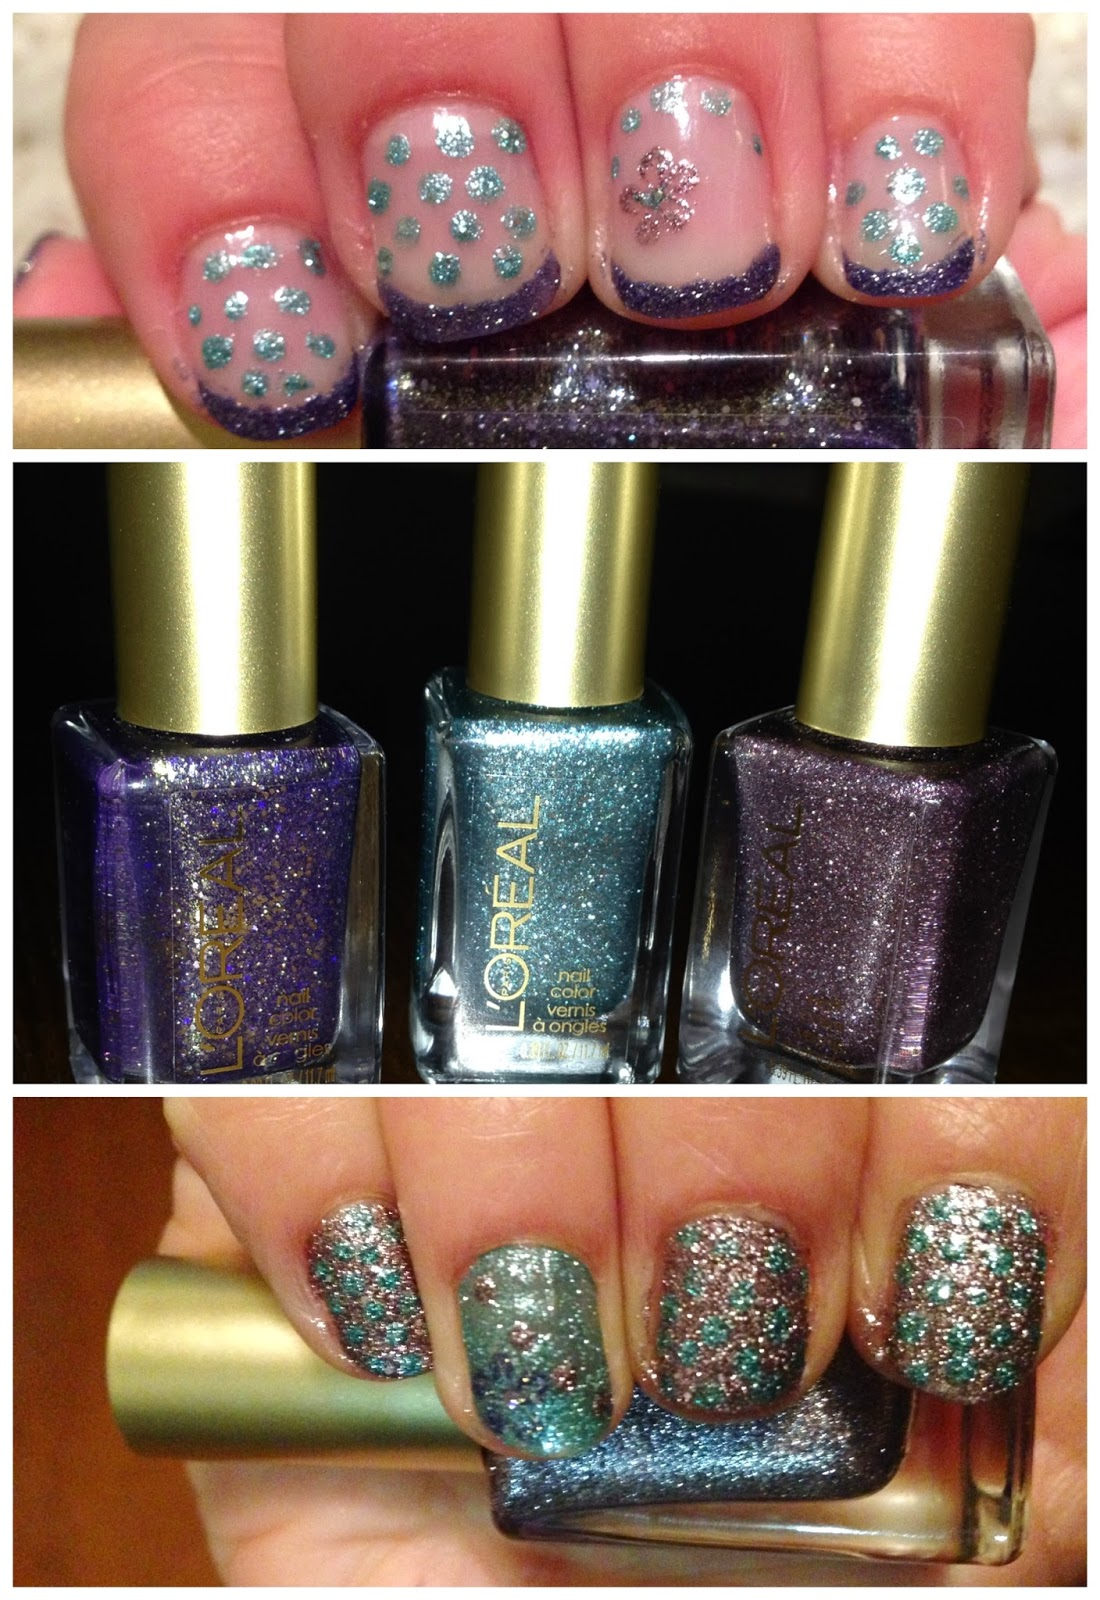 nail polish, manicure, l'oreal, gold dust, diamond in the rough, pop the bubbles, too dimensional